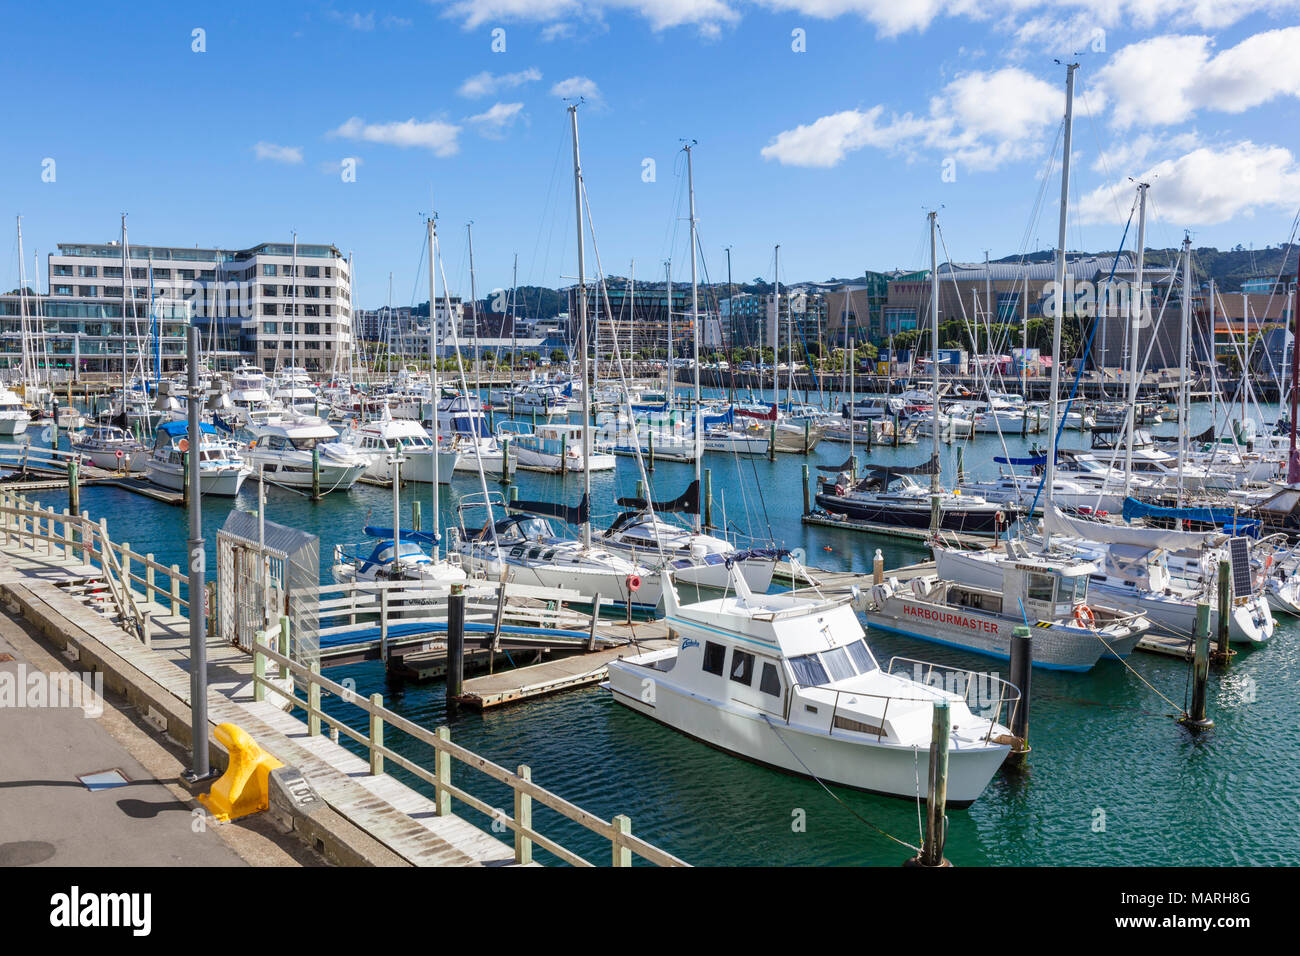 NEW ZEALAND WELLINGTON NEW ZEALAND Yachts moored in  Chaffers marina Clyde Quay wharf Wellington Waterfront Wellington New zealand - Stock Image